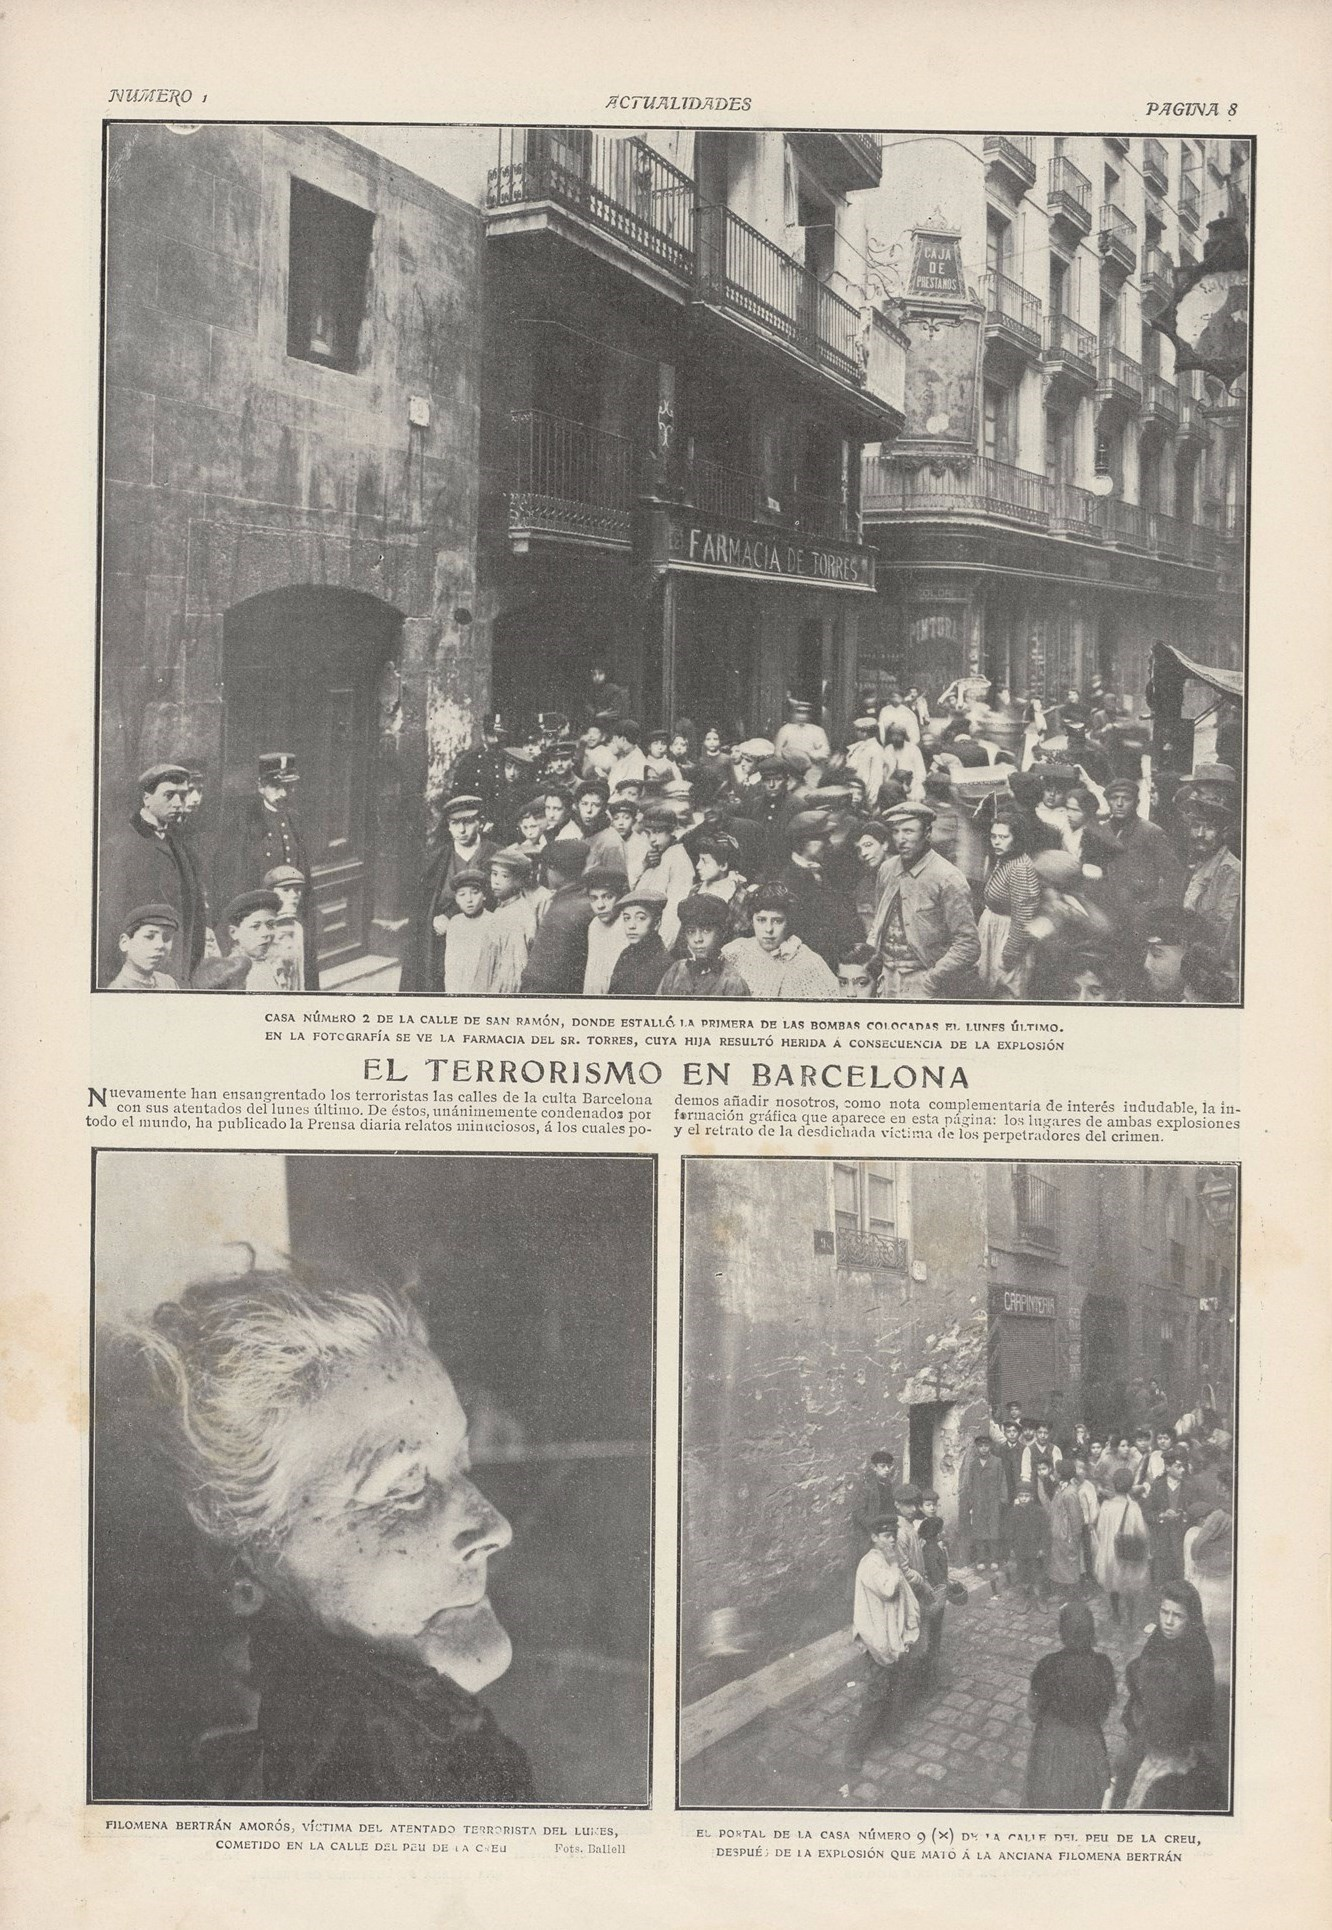 Terrorism in barcelona actualidades 20 february 1908 photos ballell bne